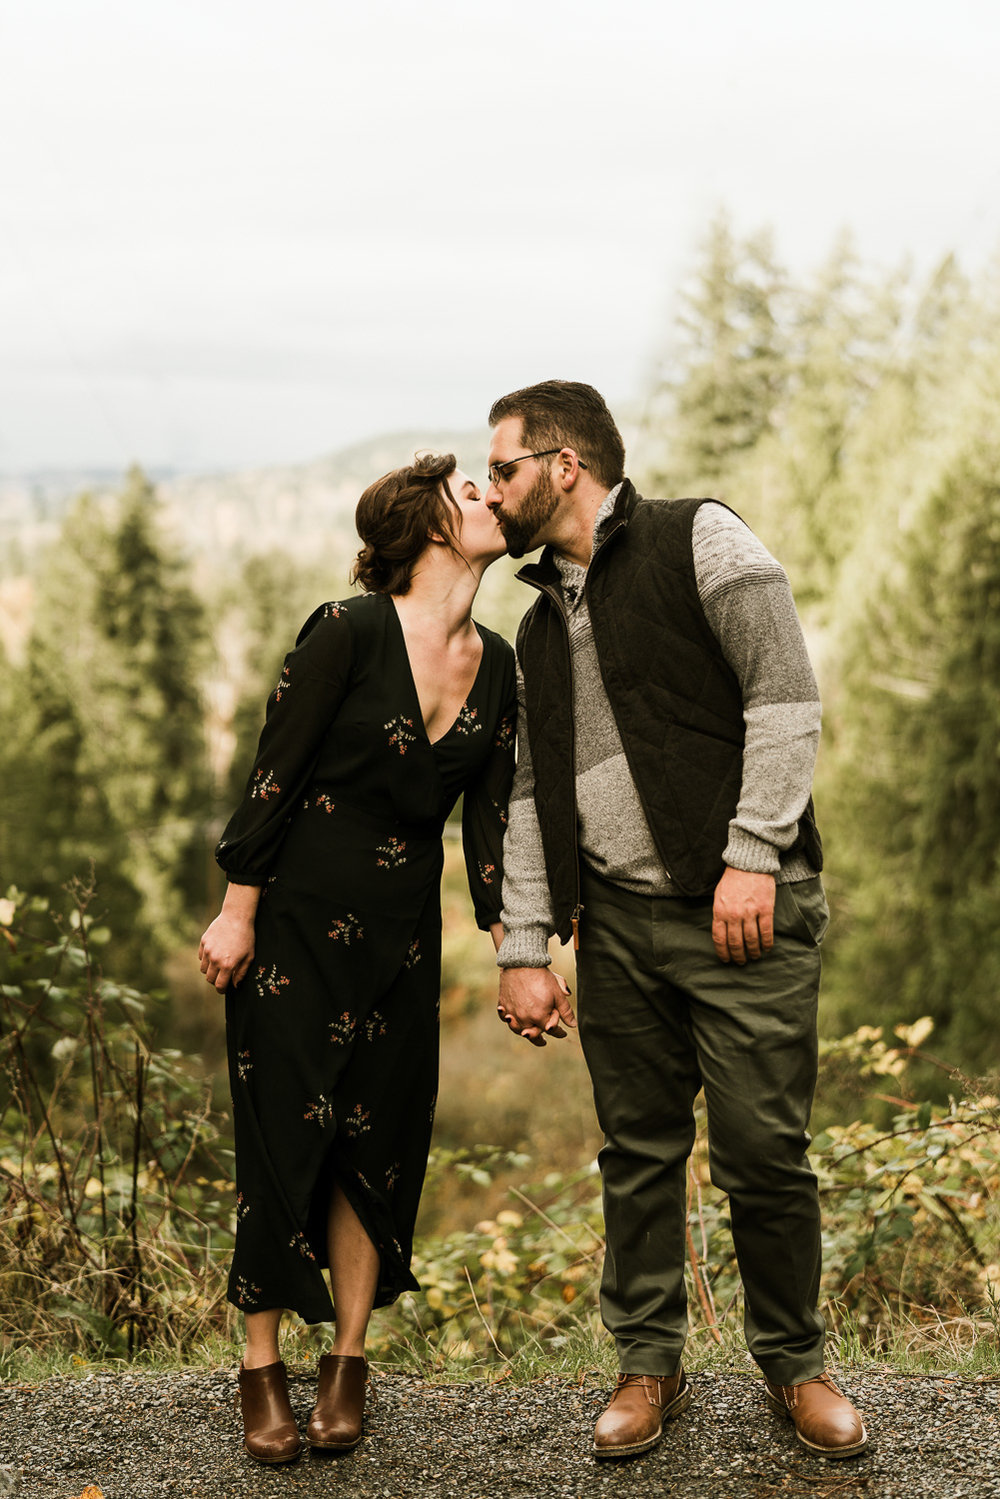 A Picturesque PNW Engagement Session | Snoqualmie Falls | Seattle Wedding photographer-23.jpg